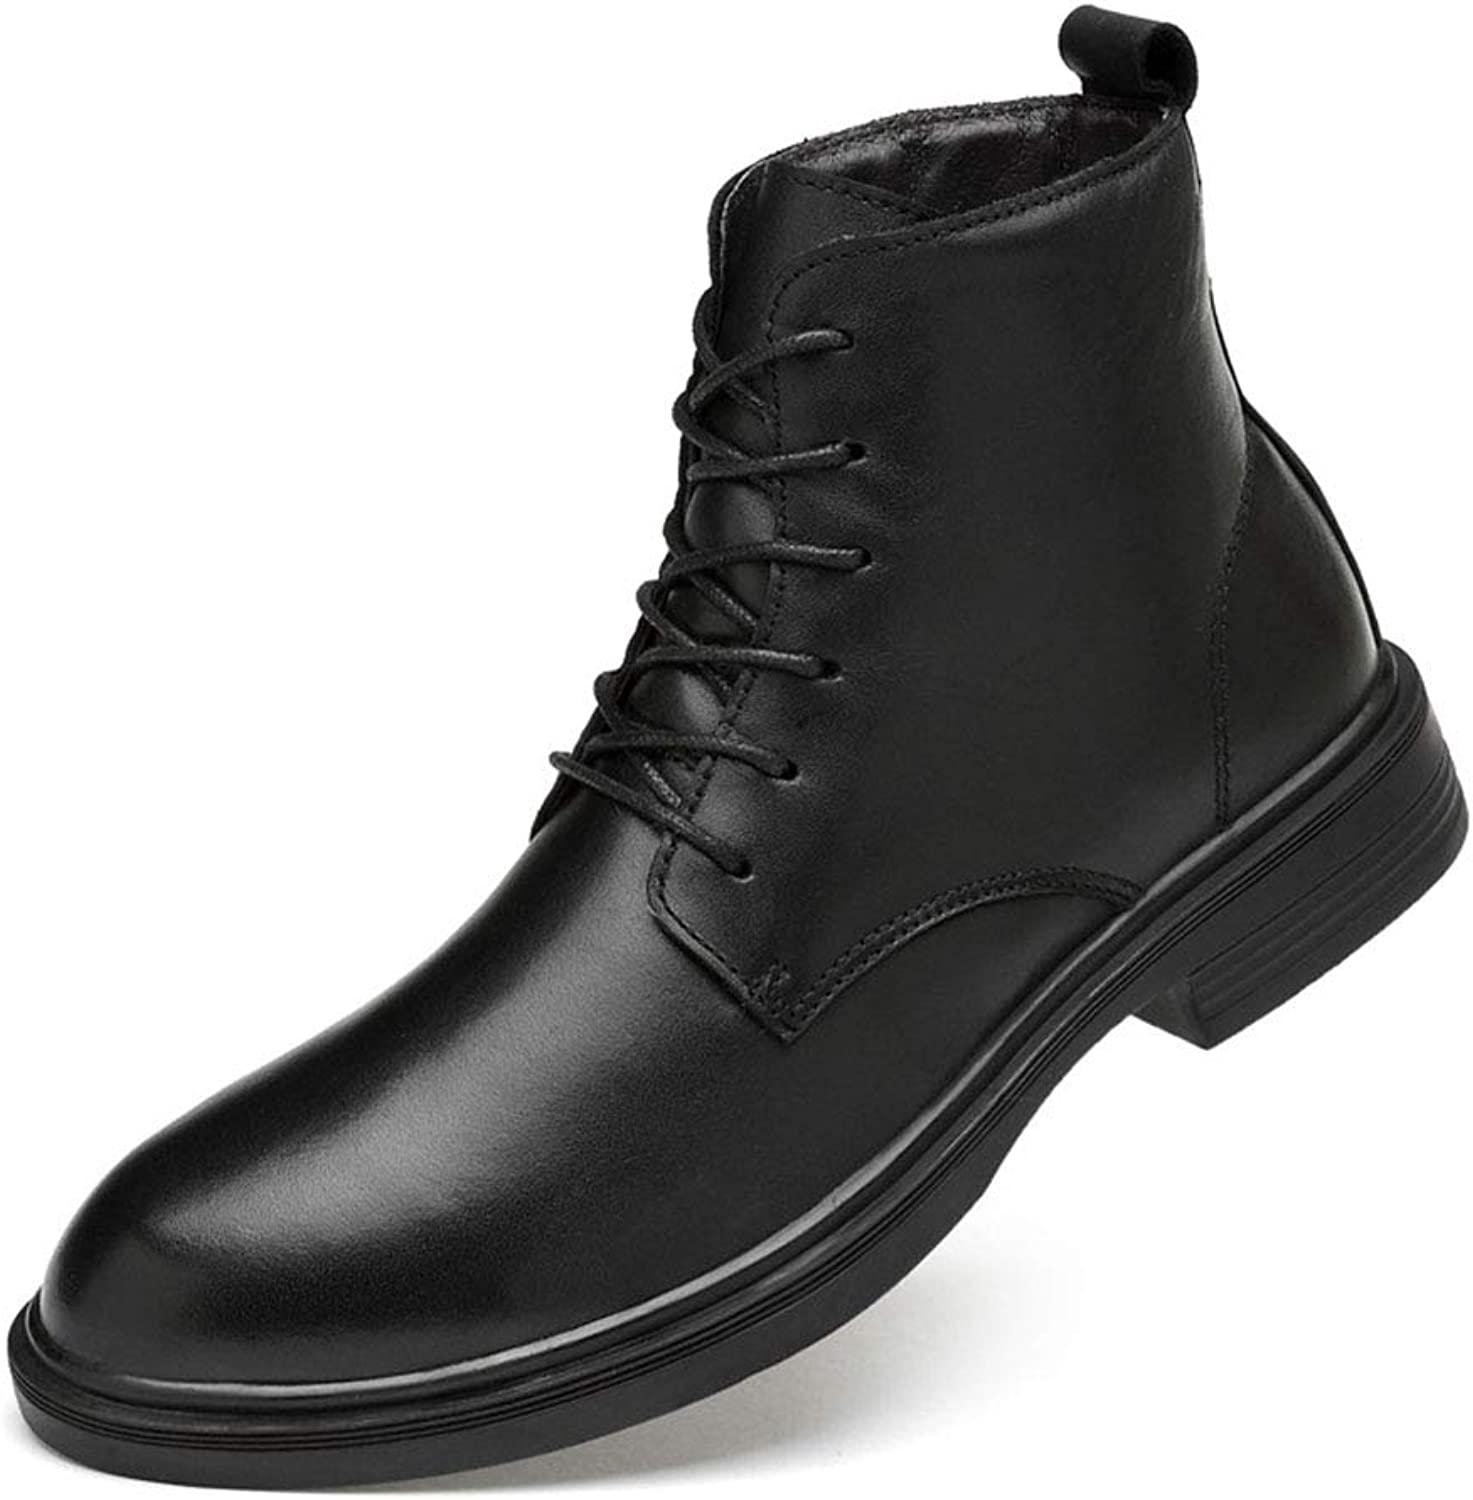 Men's shoes Men's Boots, Large Size Fall Winter Martin Boots British Plus Velvet Boots Men's Leather Booties For Daily Men's Fashion Boots (color   B, Size   41)